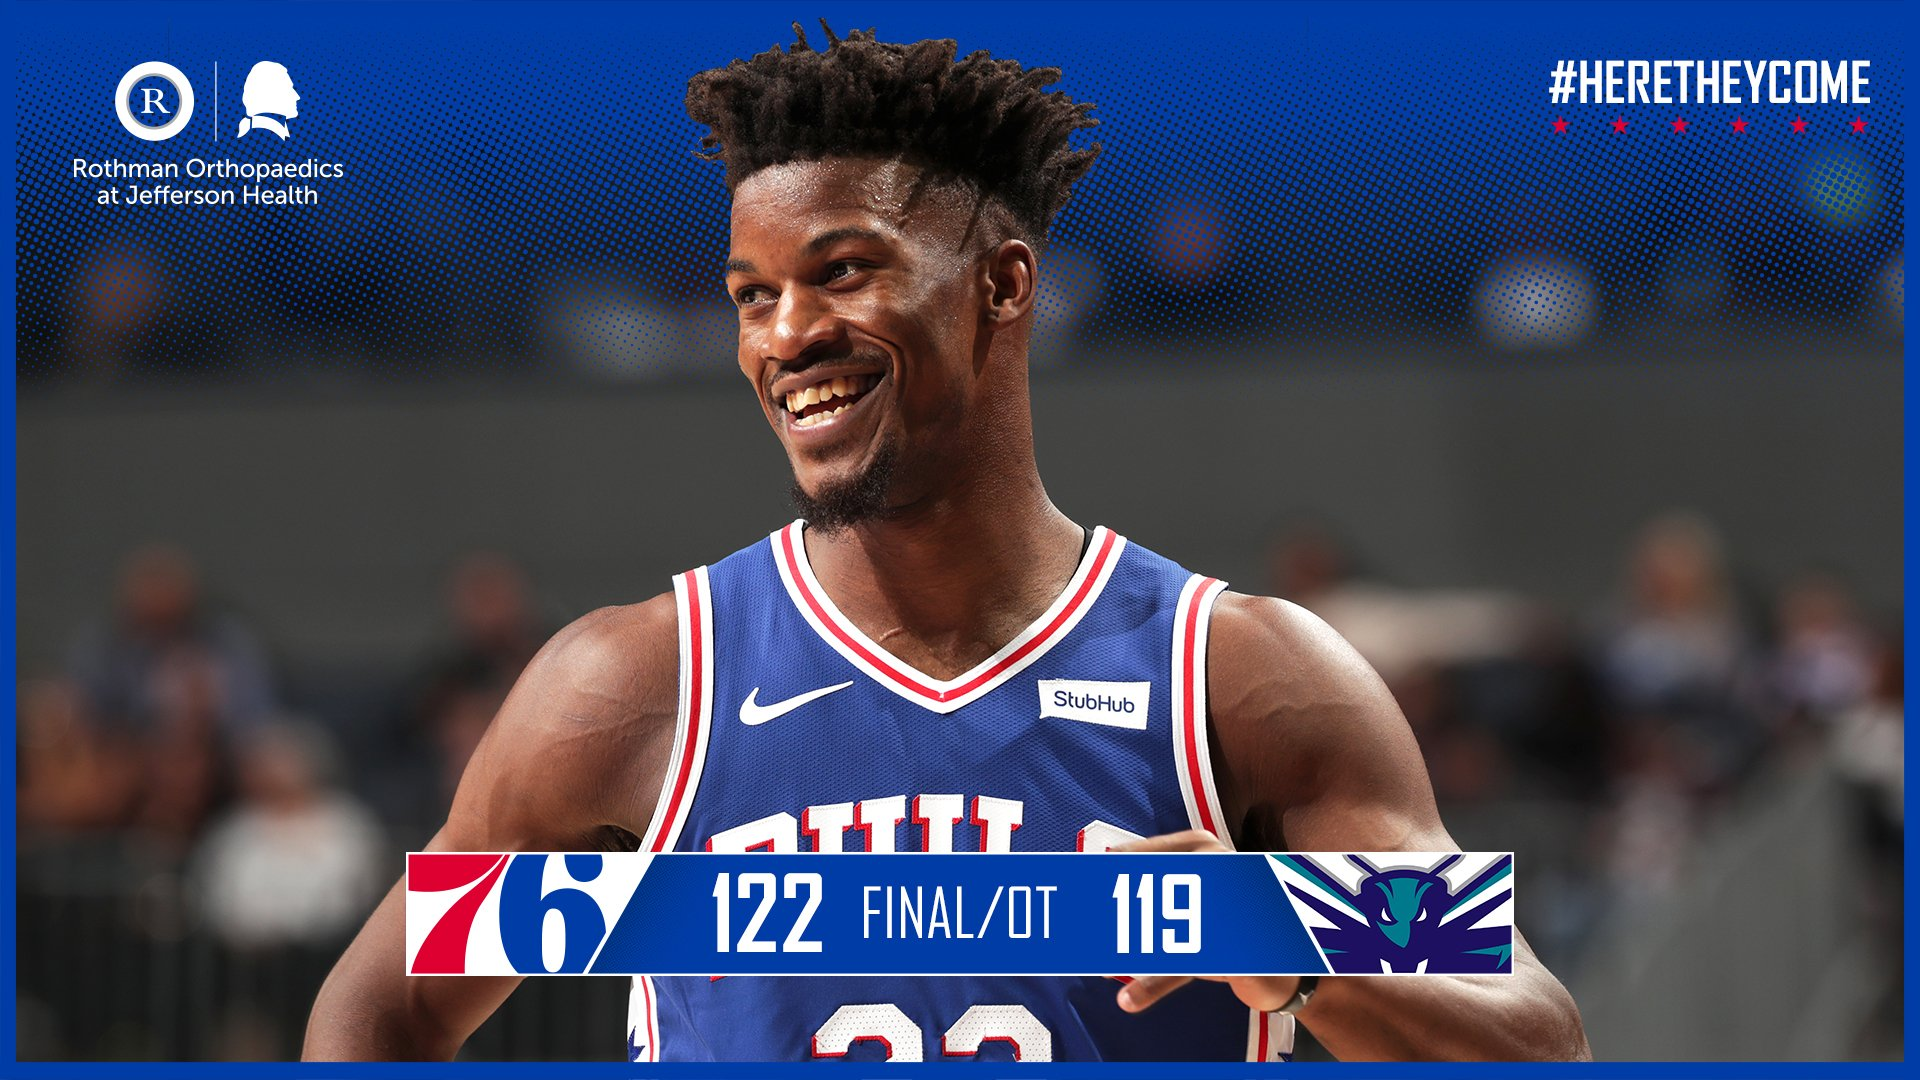 Absolutely buzzing.  ��https://t.co/zJVLbrt5BR | #HereTheyCome https://t.co/MmhKnT5Jqa